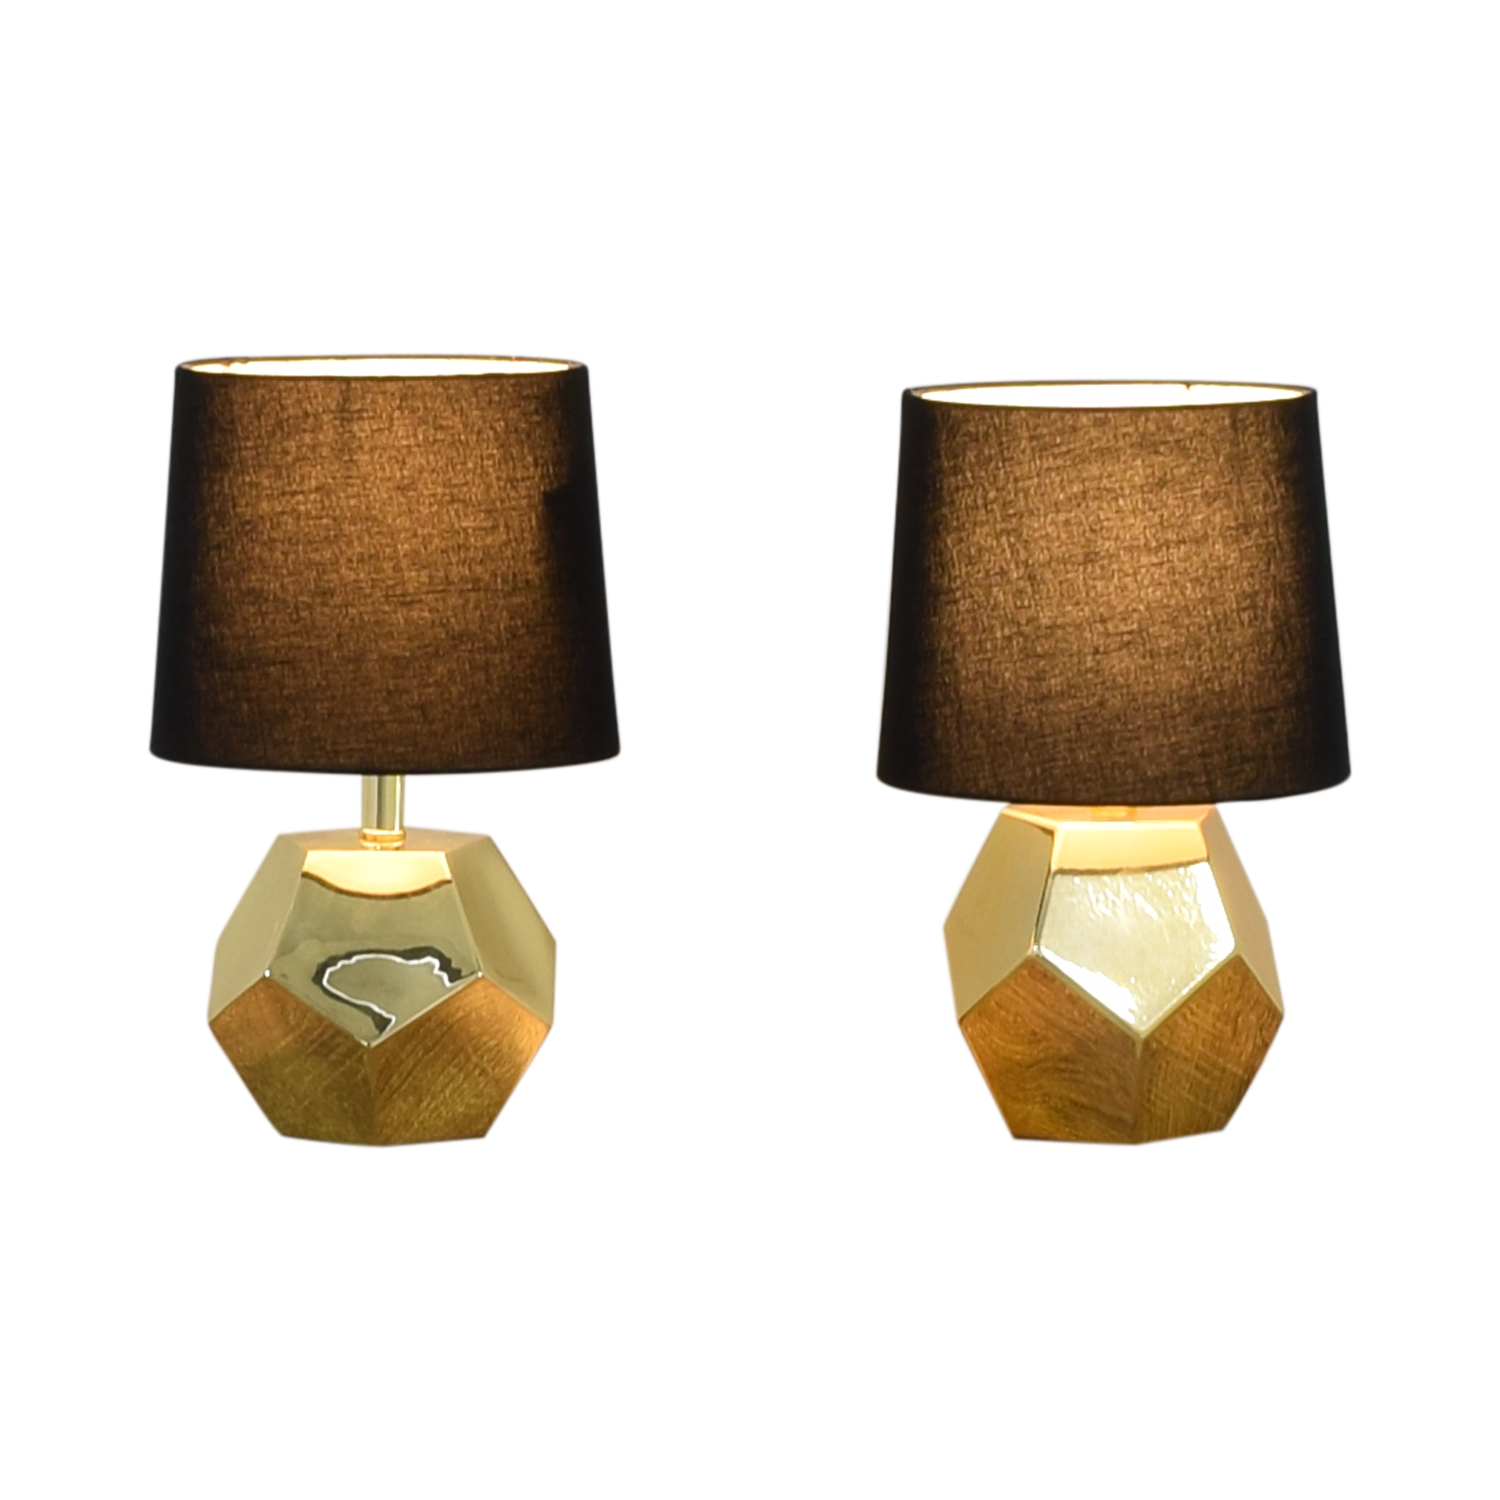 Land of Nod Land of Nod Between a Rock and a Table Lamps price